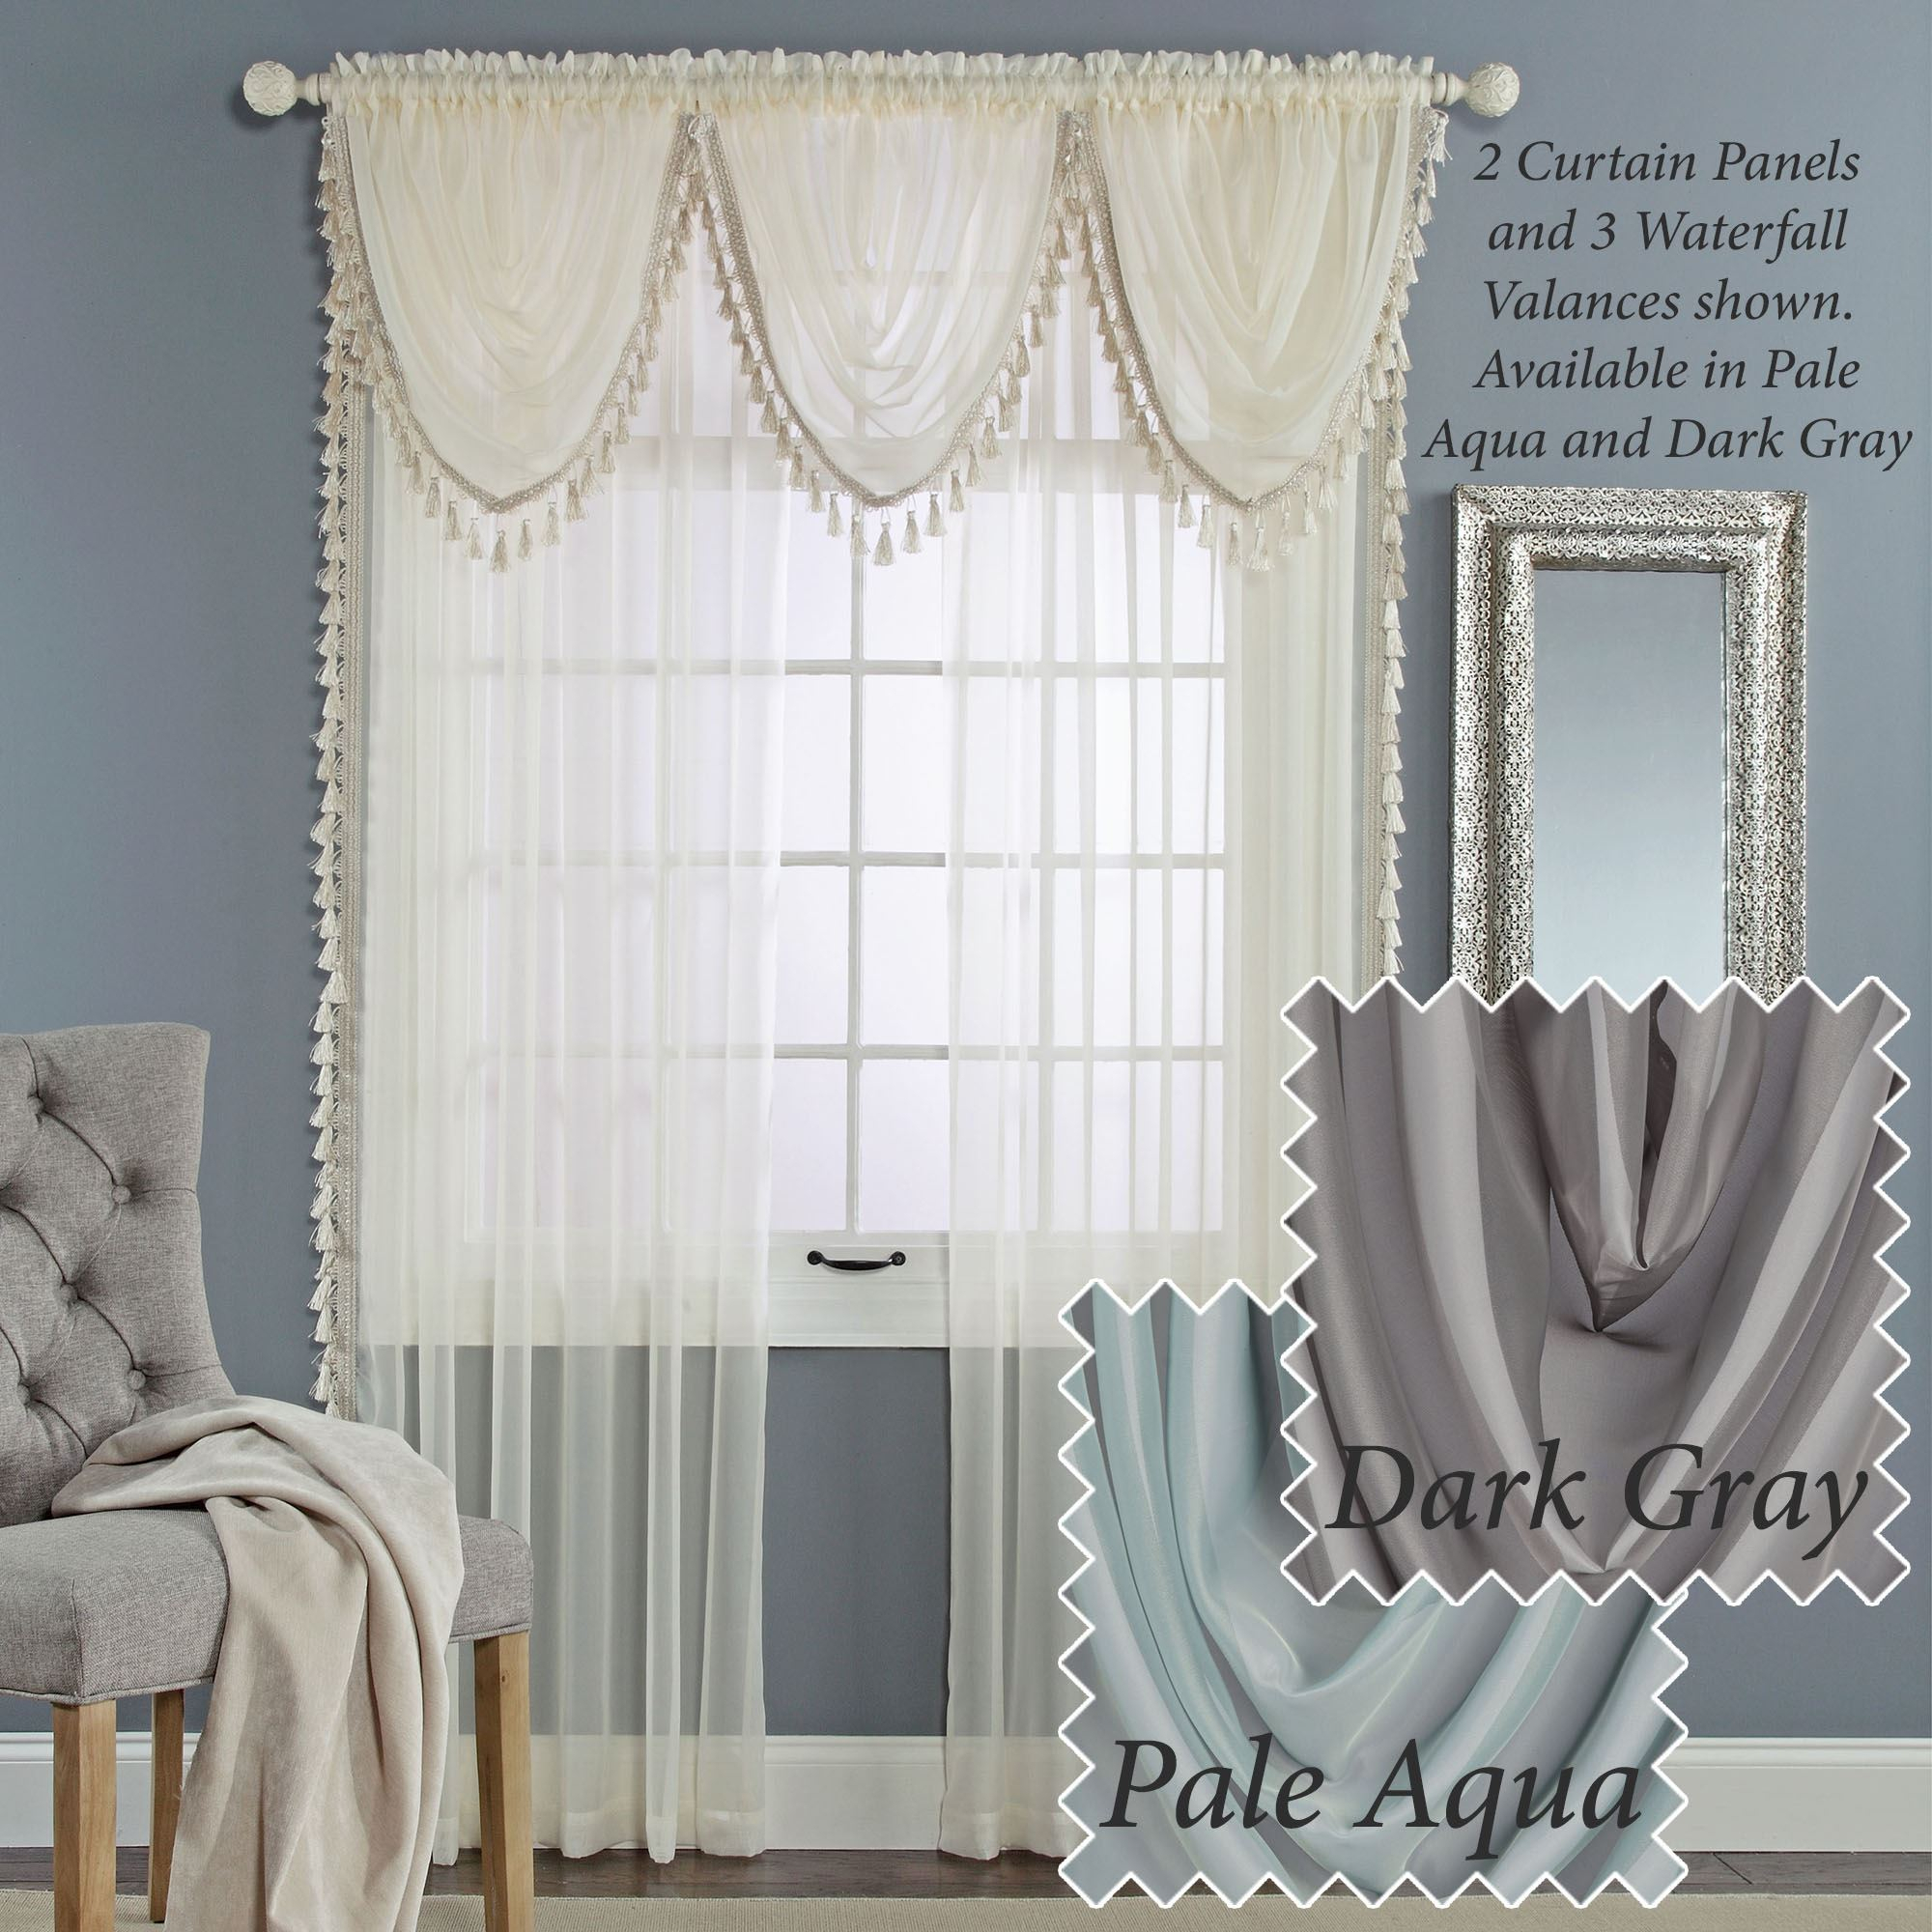 Charlotte Sheer Voile Window Treatment With Sheer Voile Waterfall Ruffled Tier Single Curtain Panels (View 9 of 20)